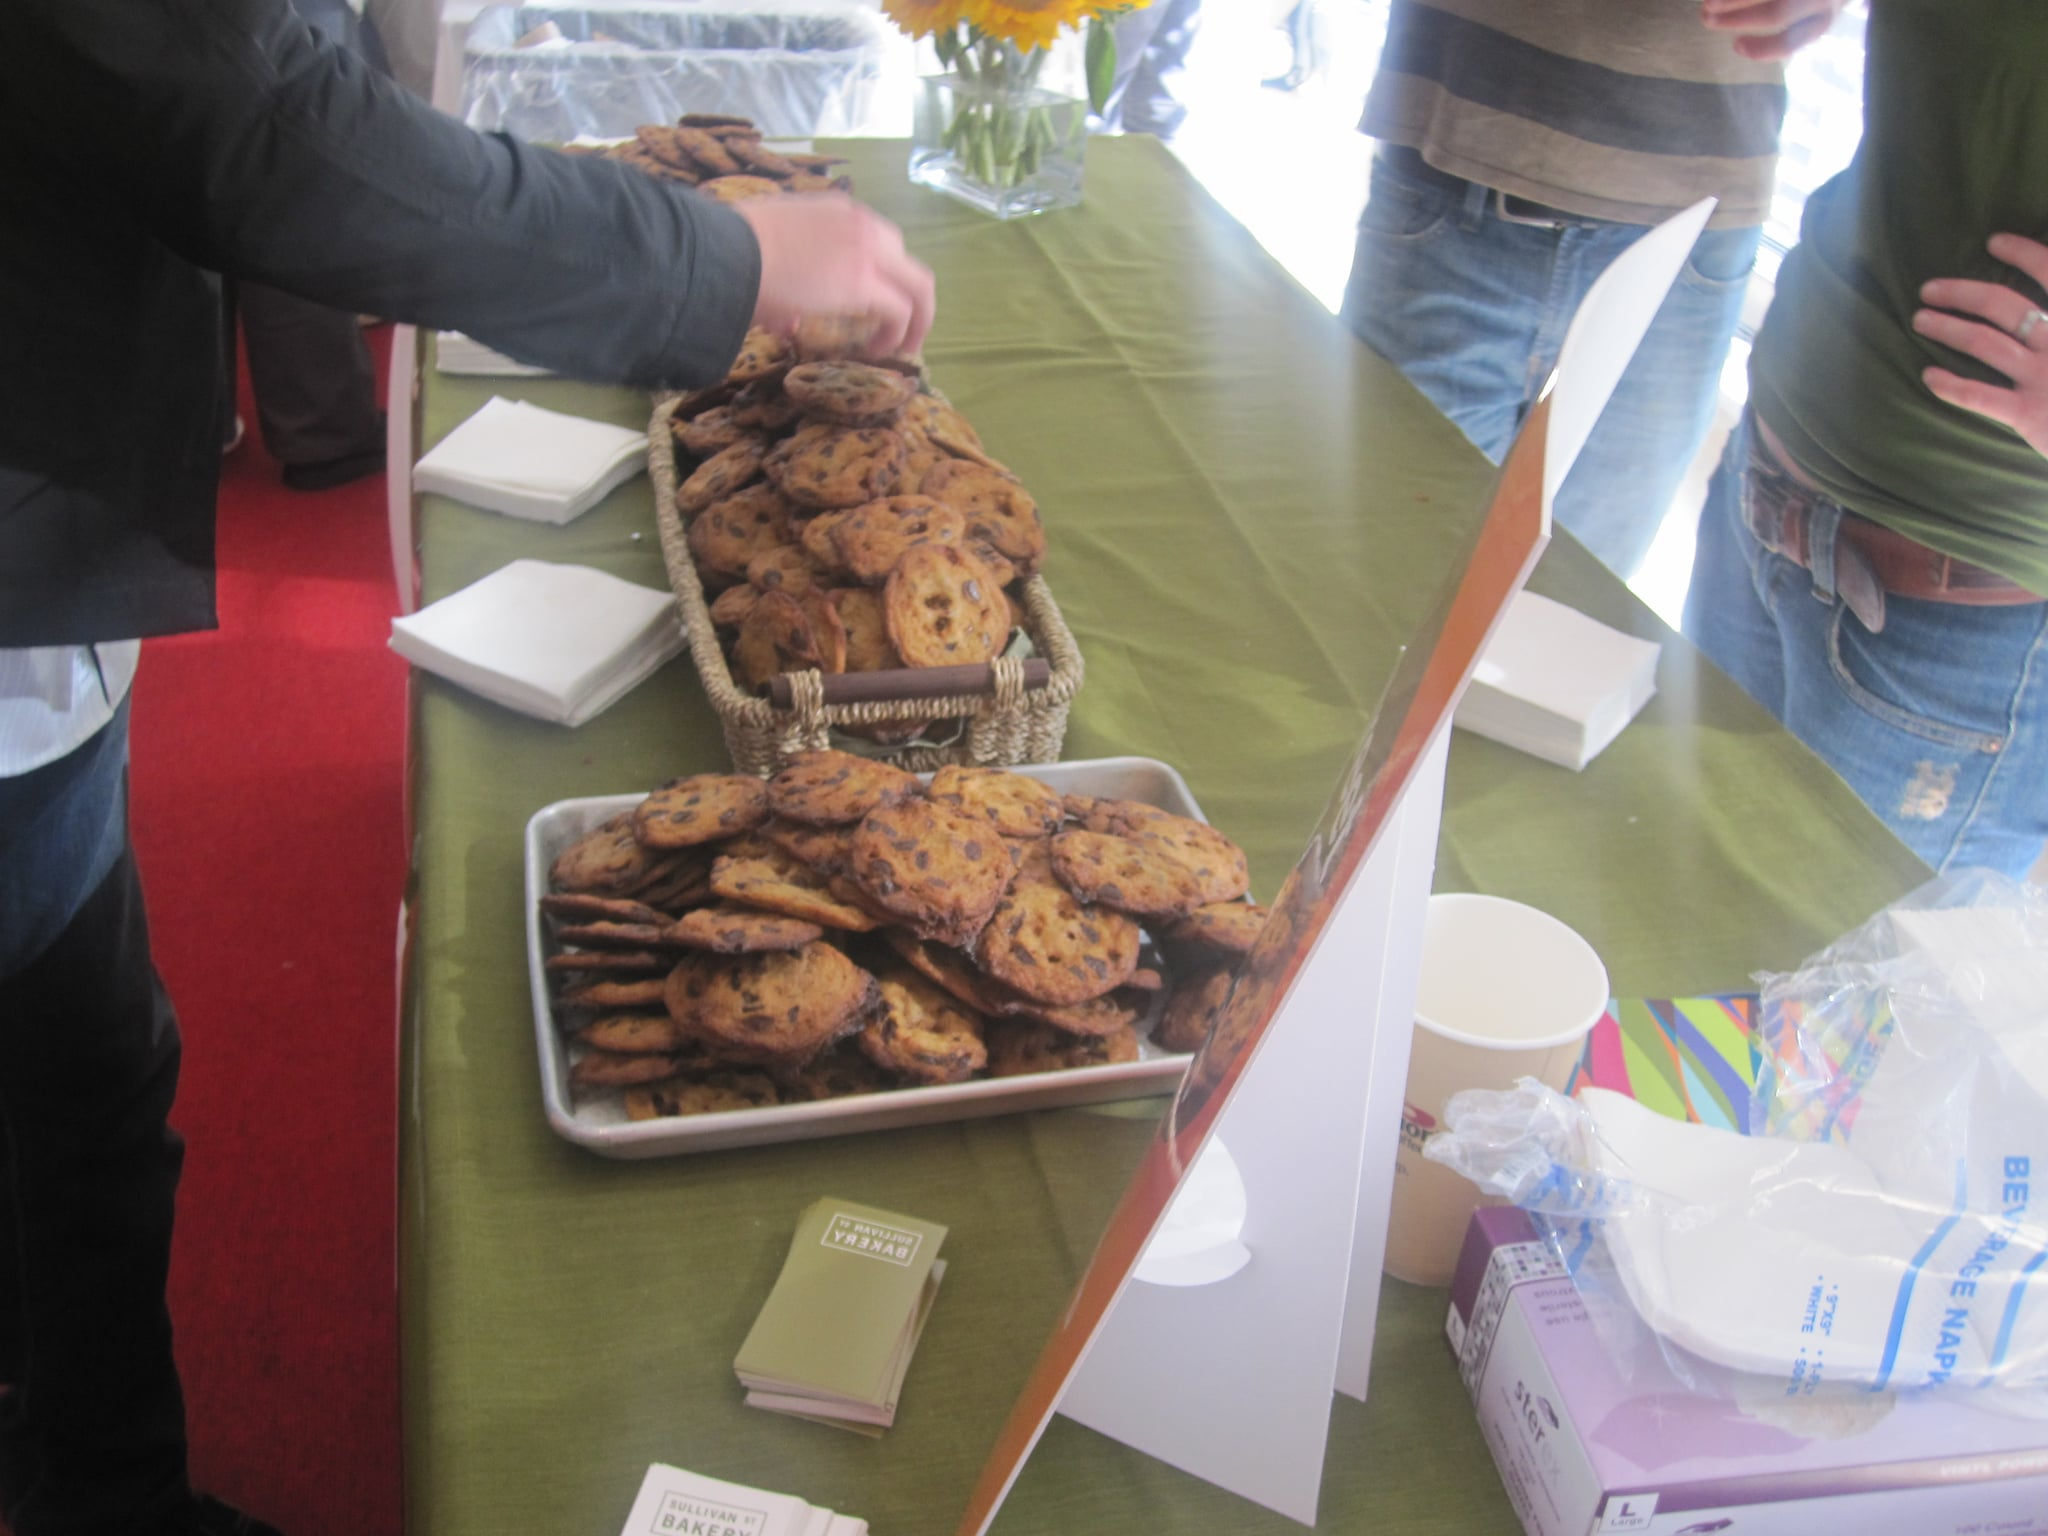 Naturally, there were chocolate chip cookies.